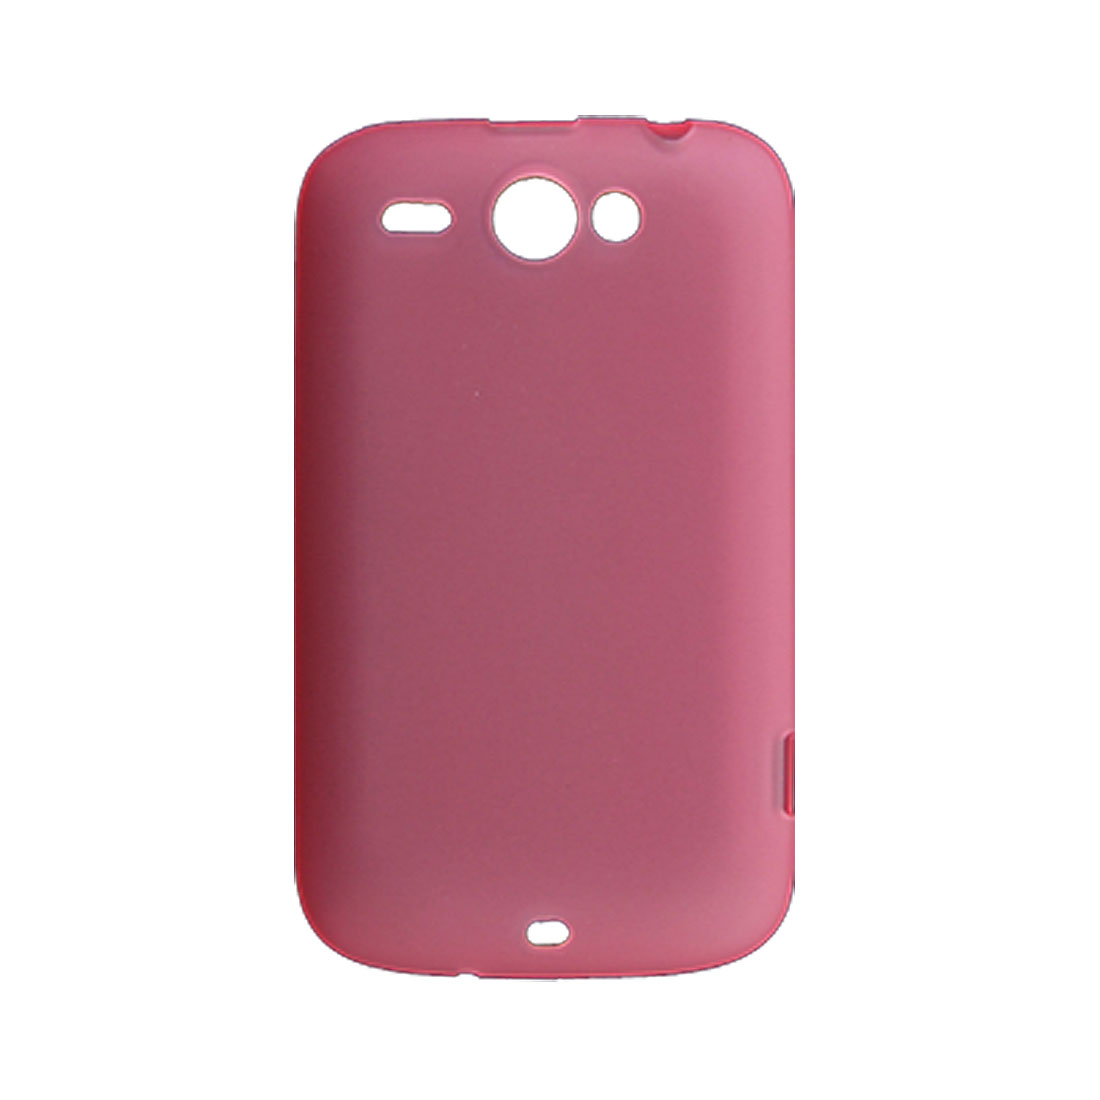 Soft Plastic Skin Protective Cover Pink for HTC Wildfire G8